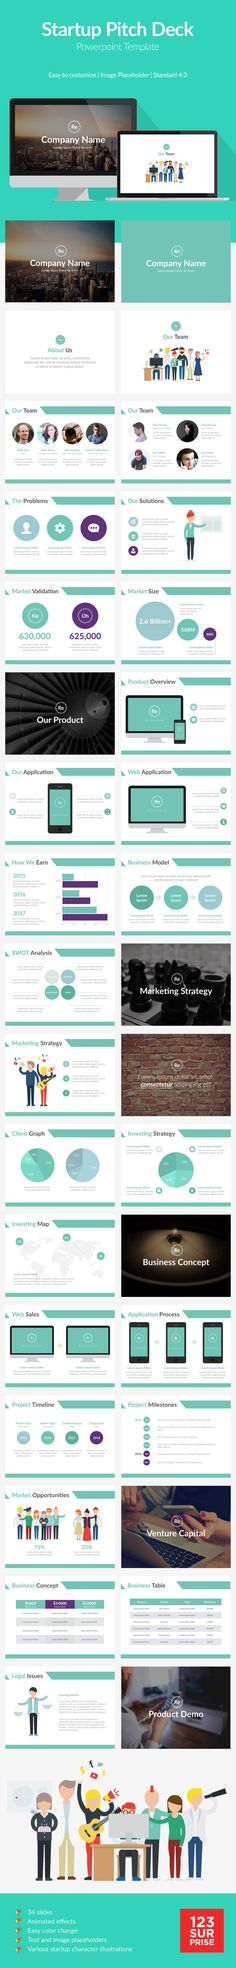 Startup Pitch Deck Template #design #slides Buy Now: http://graphicriver.net/item/startup-pitch-deck-template/12882233?ref=ksioks